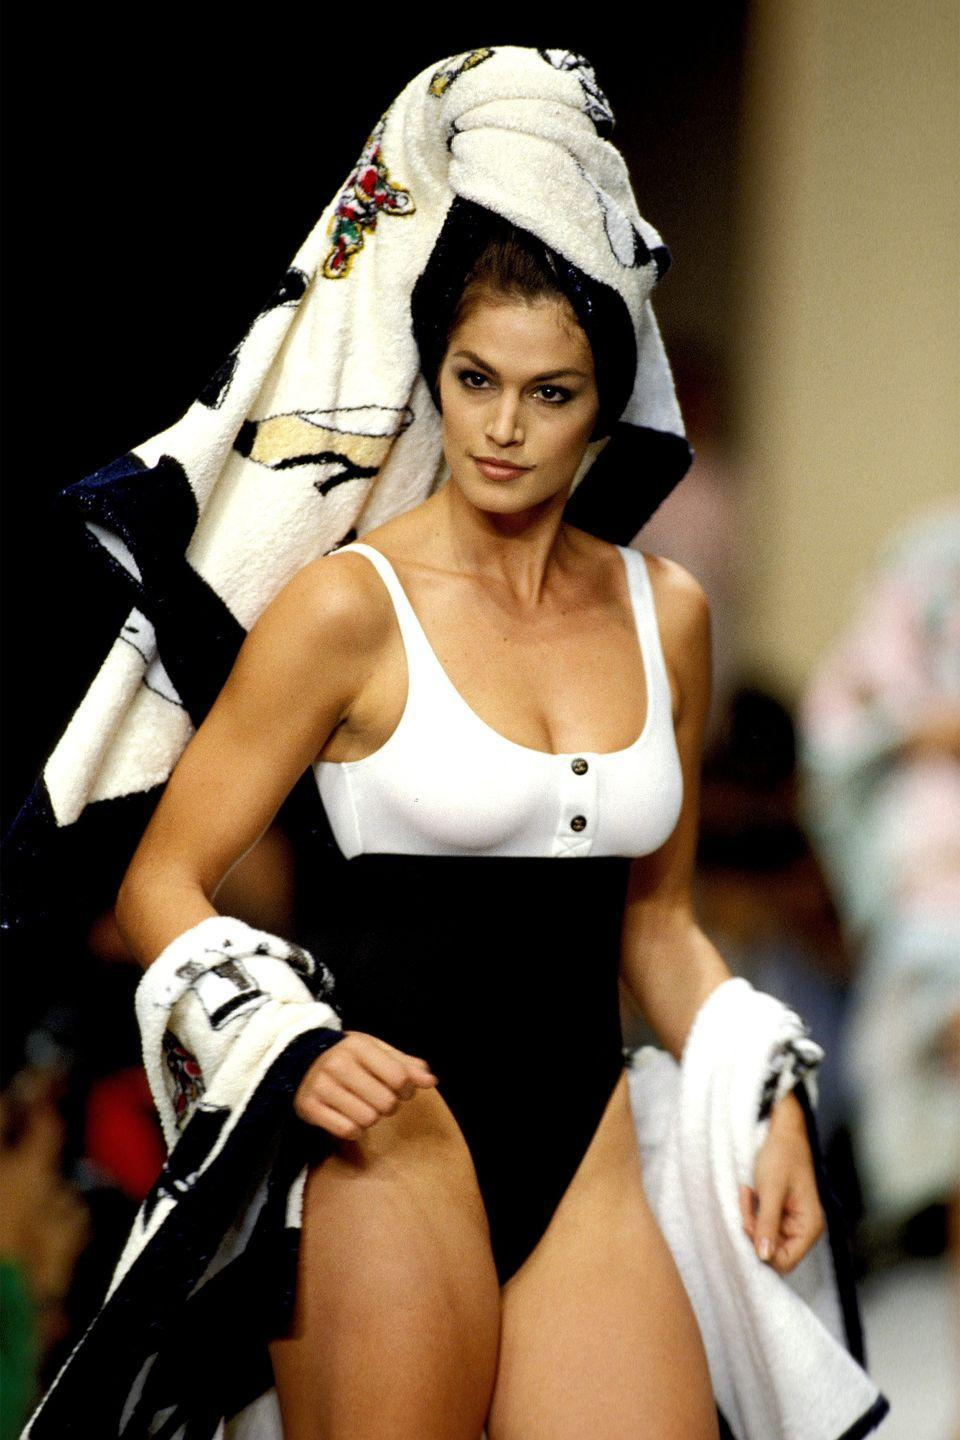 "<p>Before Crawford graced the runway and the covers of all major fashion magazines, she was a girl living in the small town of DeKalb, Illinois. She <a href=""https://www.vanityfair.com/hollywood/2015/12/cindy-crawford-first-modeling-photo"" rel=""nofollow noopener"" target=""_blank"" data-ylk=""slk:recounted"" class=""link rapid-noclick-resp"">recounted</a> how a poolside photo that a local photographer took of her piqued her interest in modeling. From there, she traveled to Chicago and signed with the modeling agency Elite.</p>"